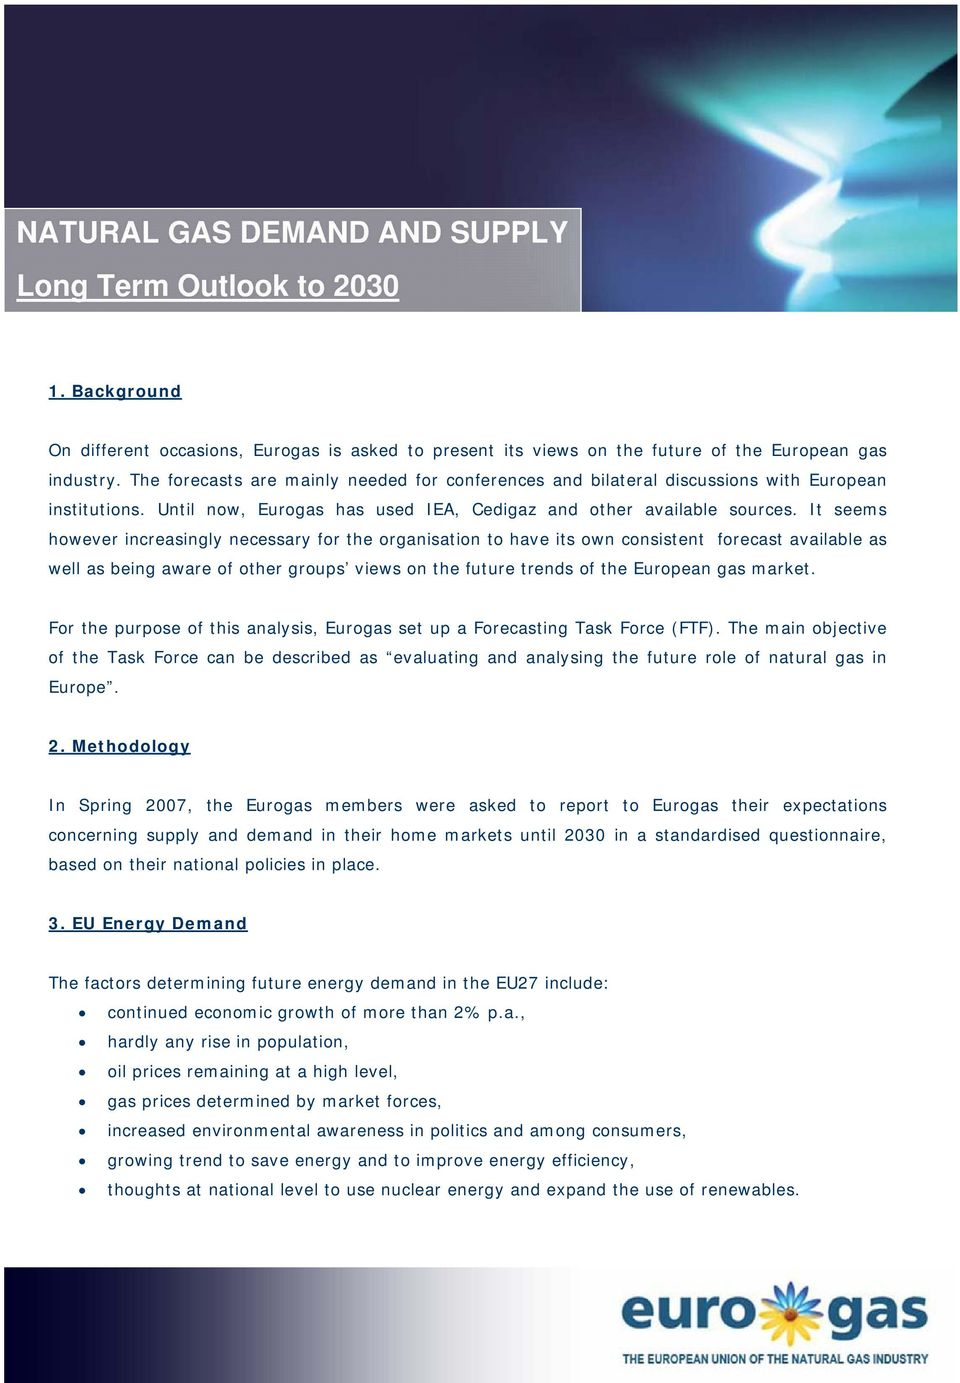 It seems however increasingly necessary for the organisation to have its own consistent forecast available as well as being aware of other groups views on the future trends of the European gas market.